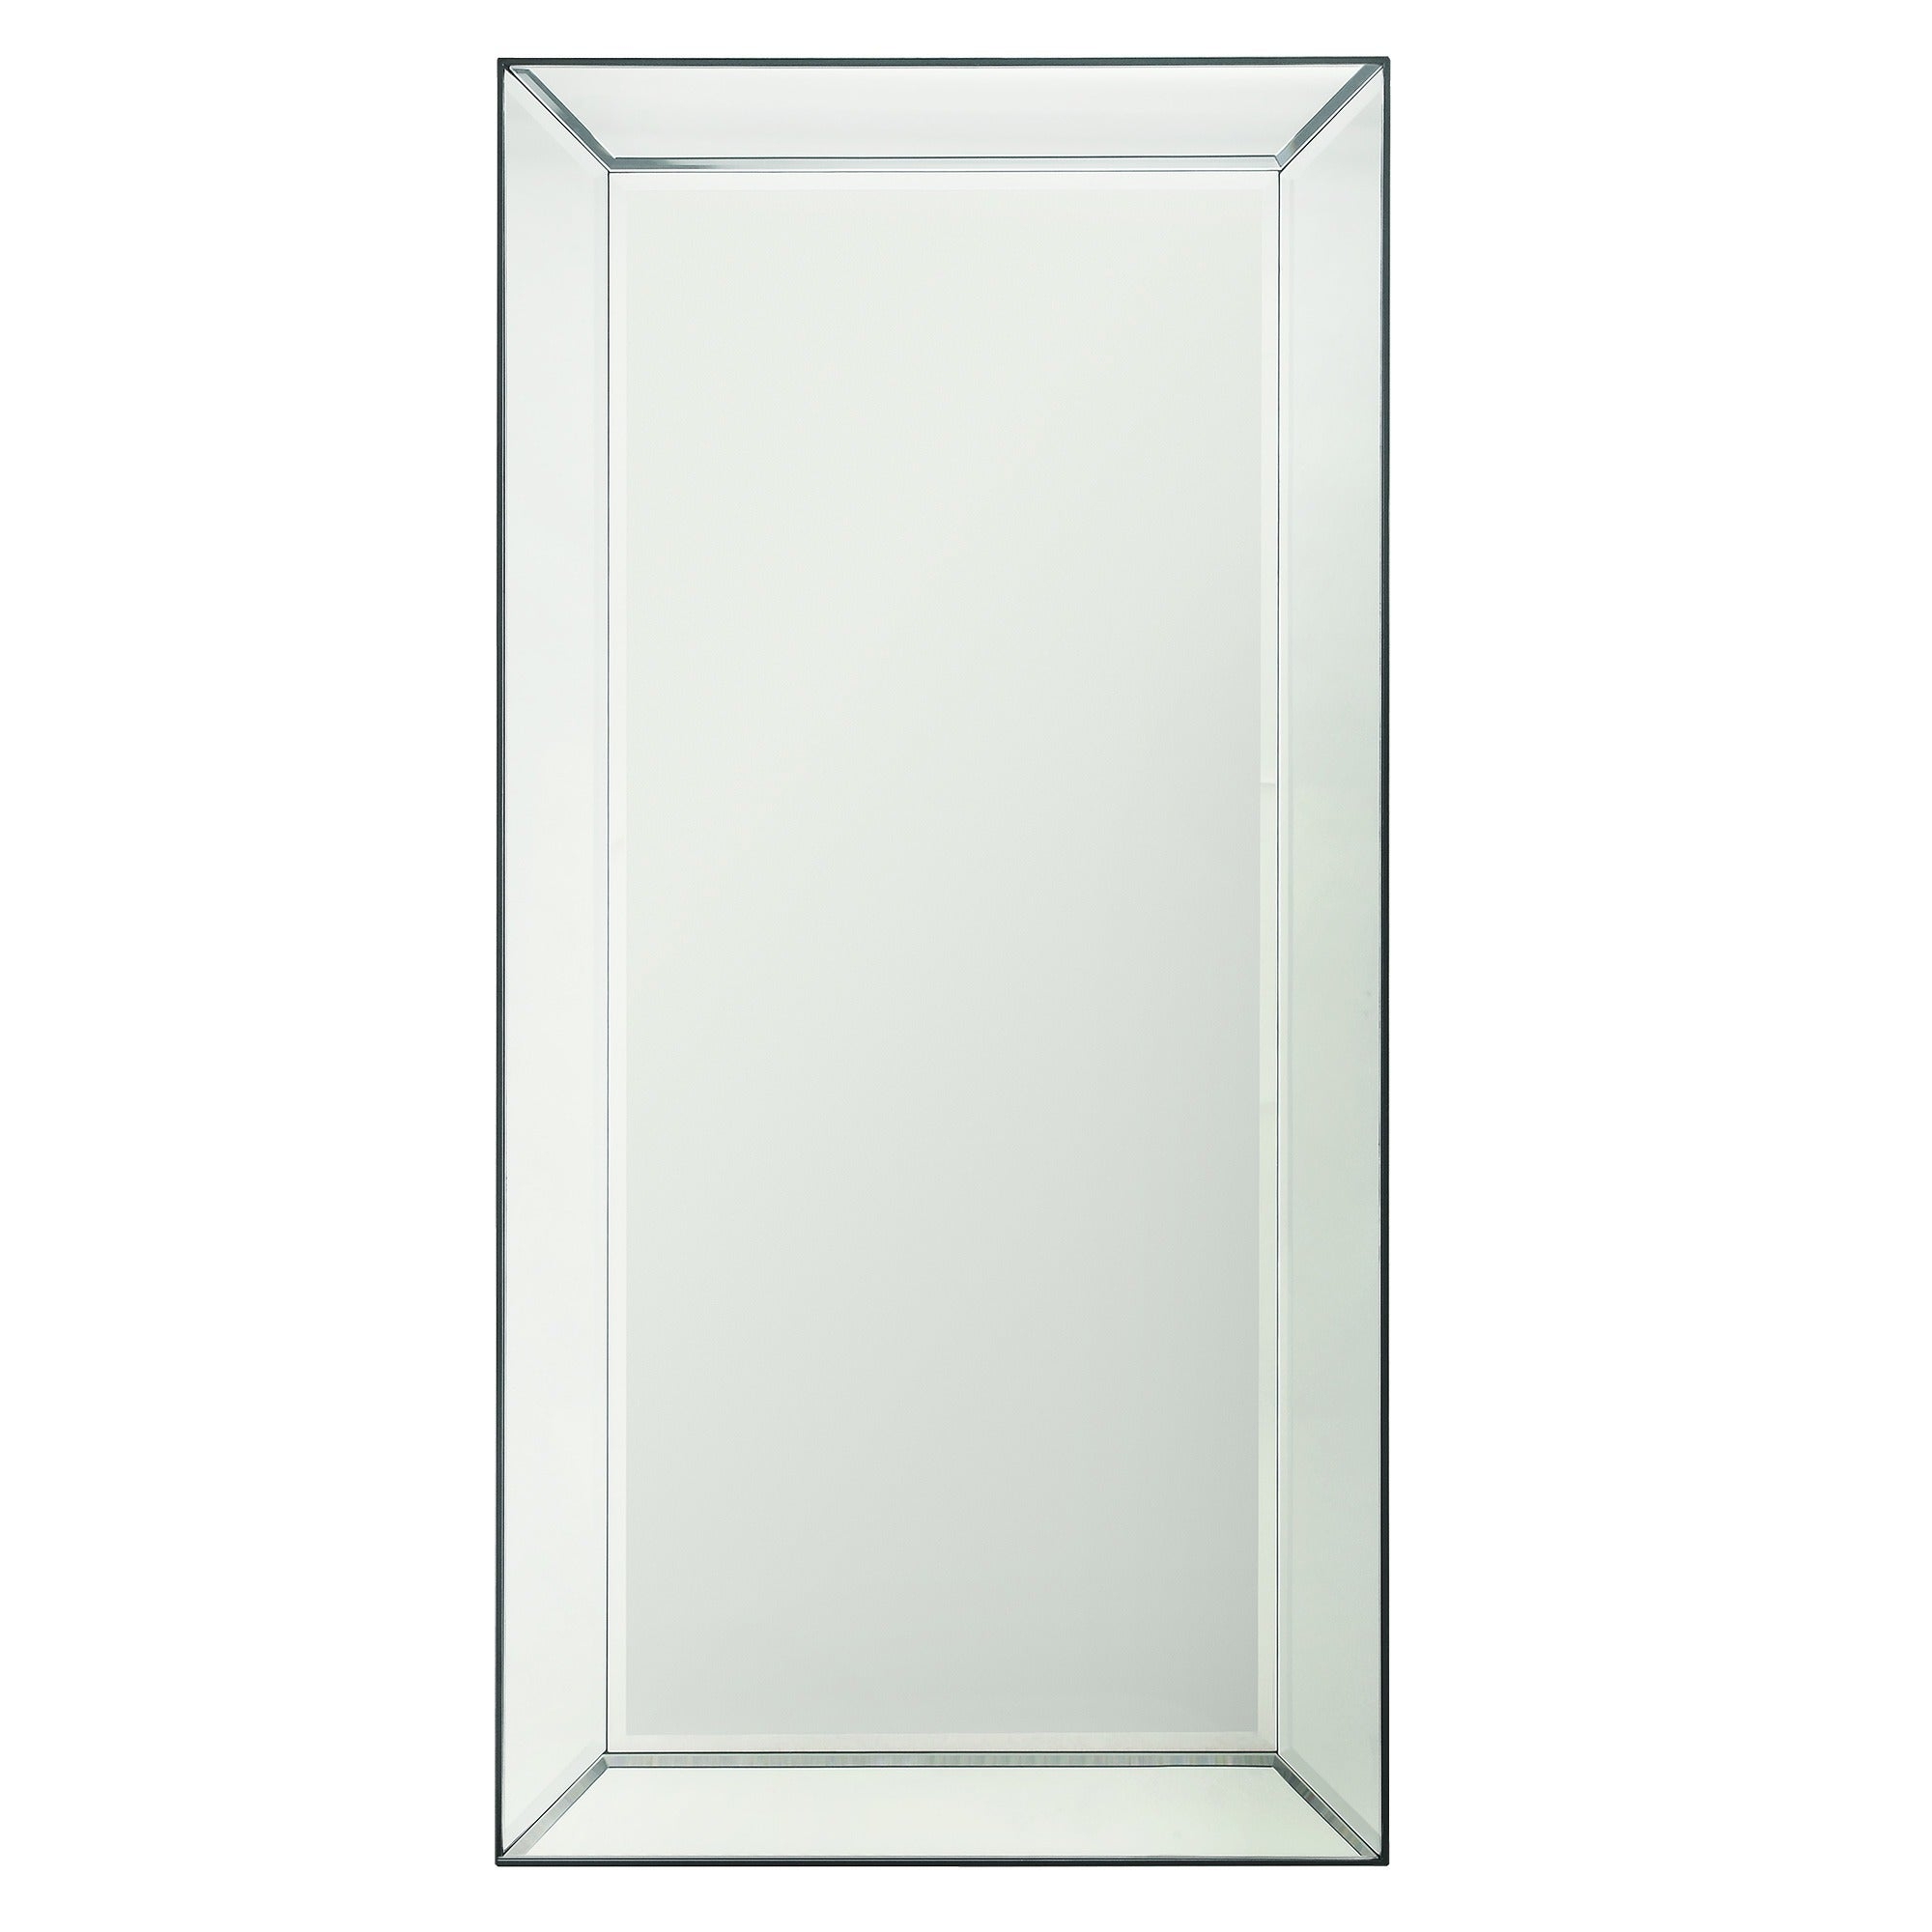 Conrad Mirrored Frame Rectangular Accent Wall Mirrorinspire Q Bold – Silver Regarding Rectangle Accent Wall Mirrors (View 10 of 30)